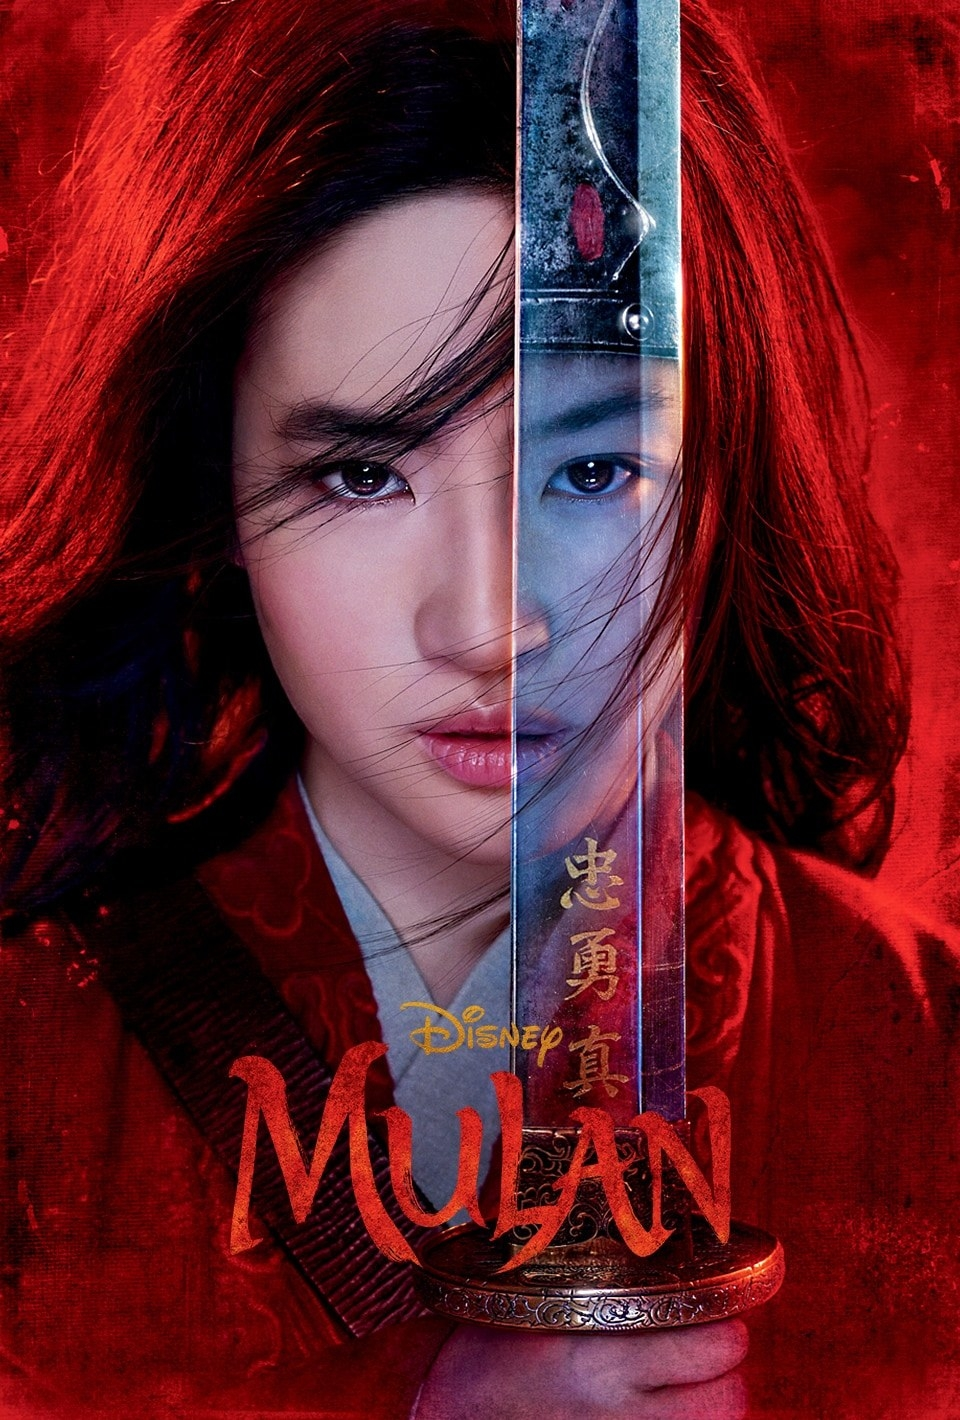 Disney's Mulan poster; Mulan is facing the camera head-on, holding a sword to her face